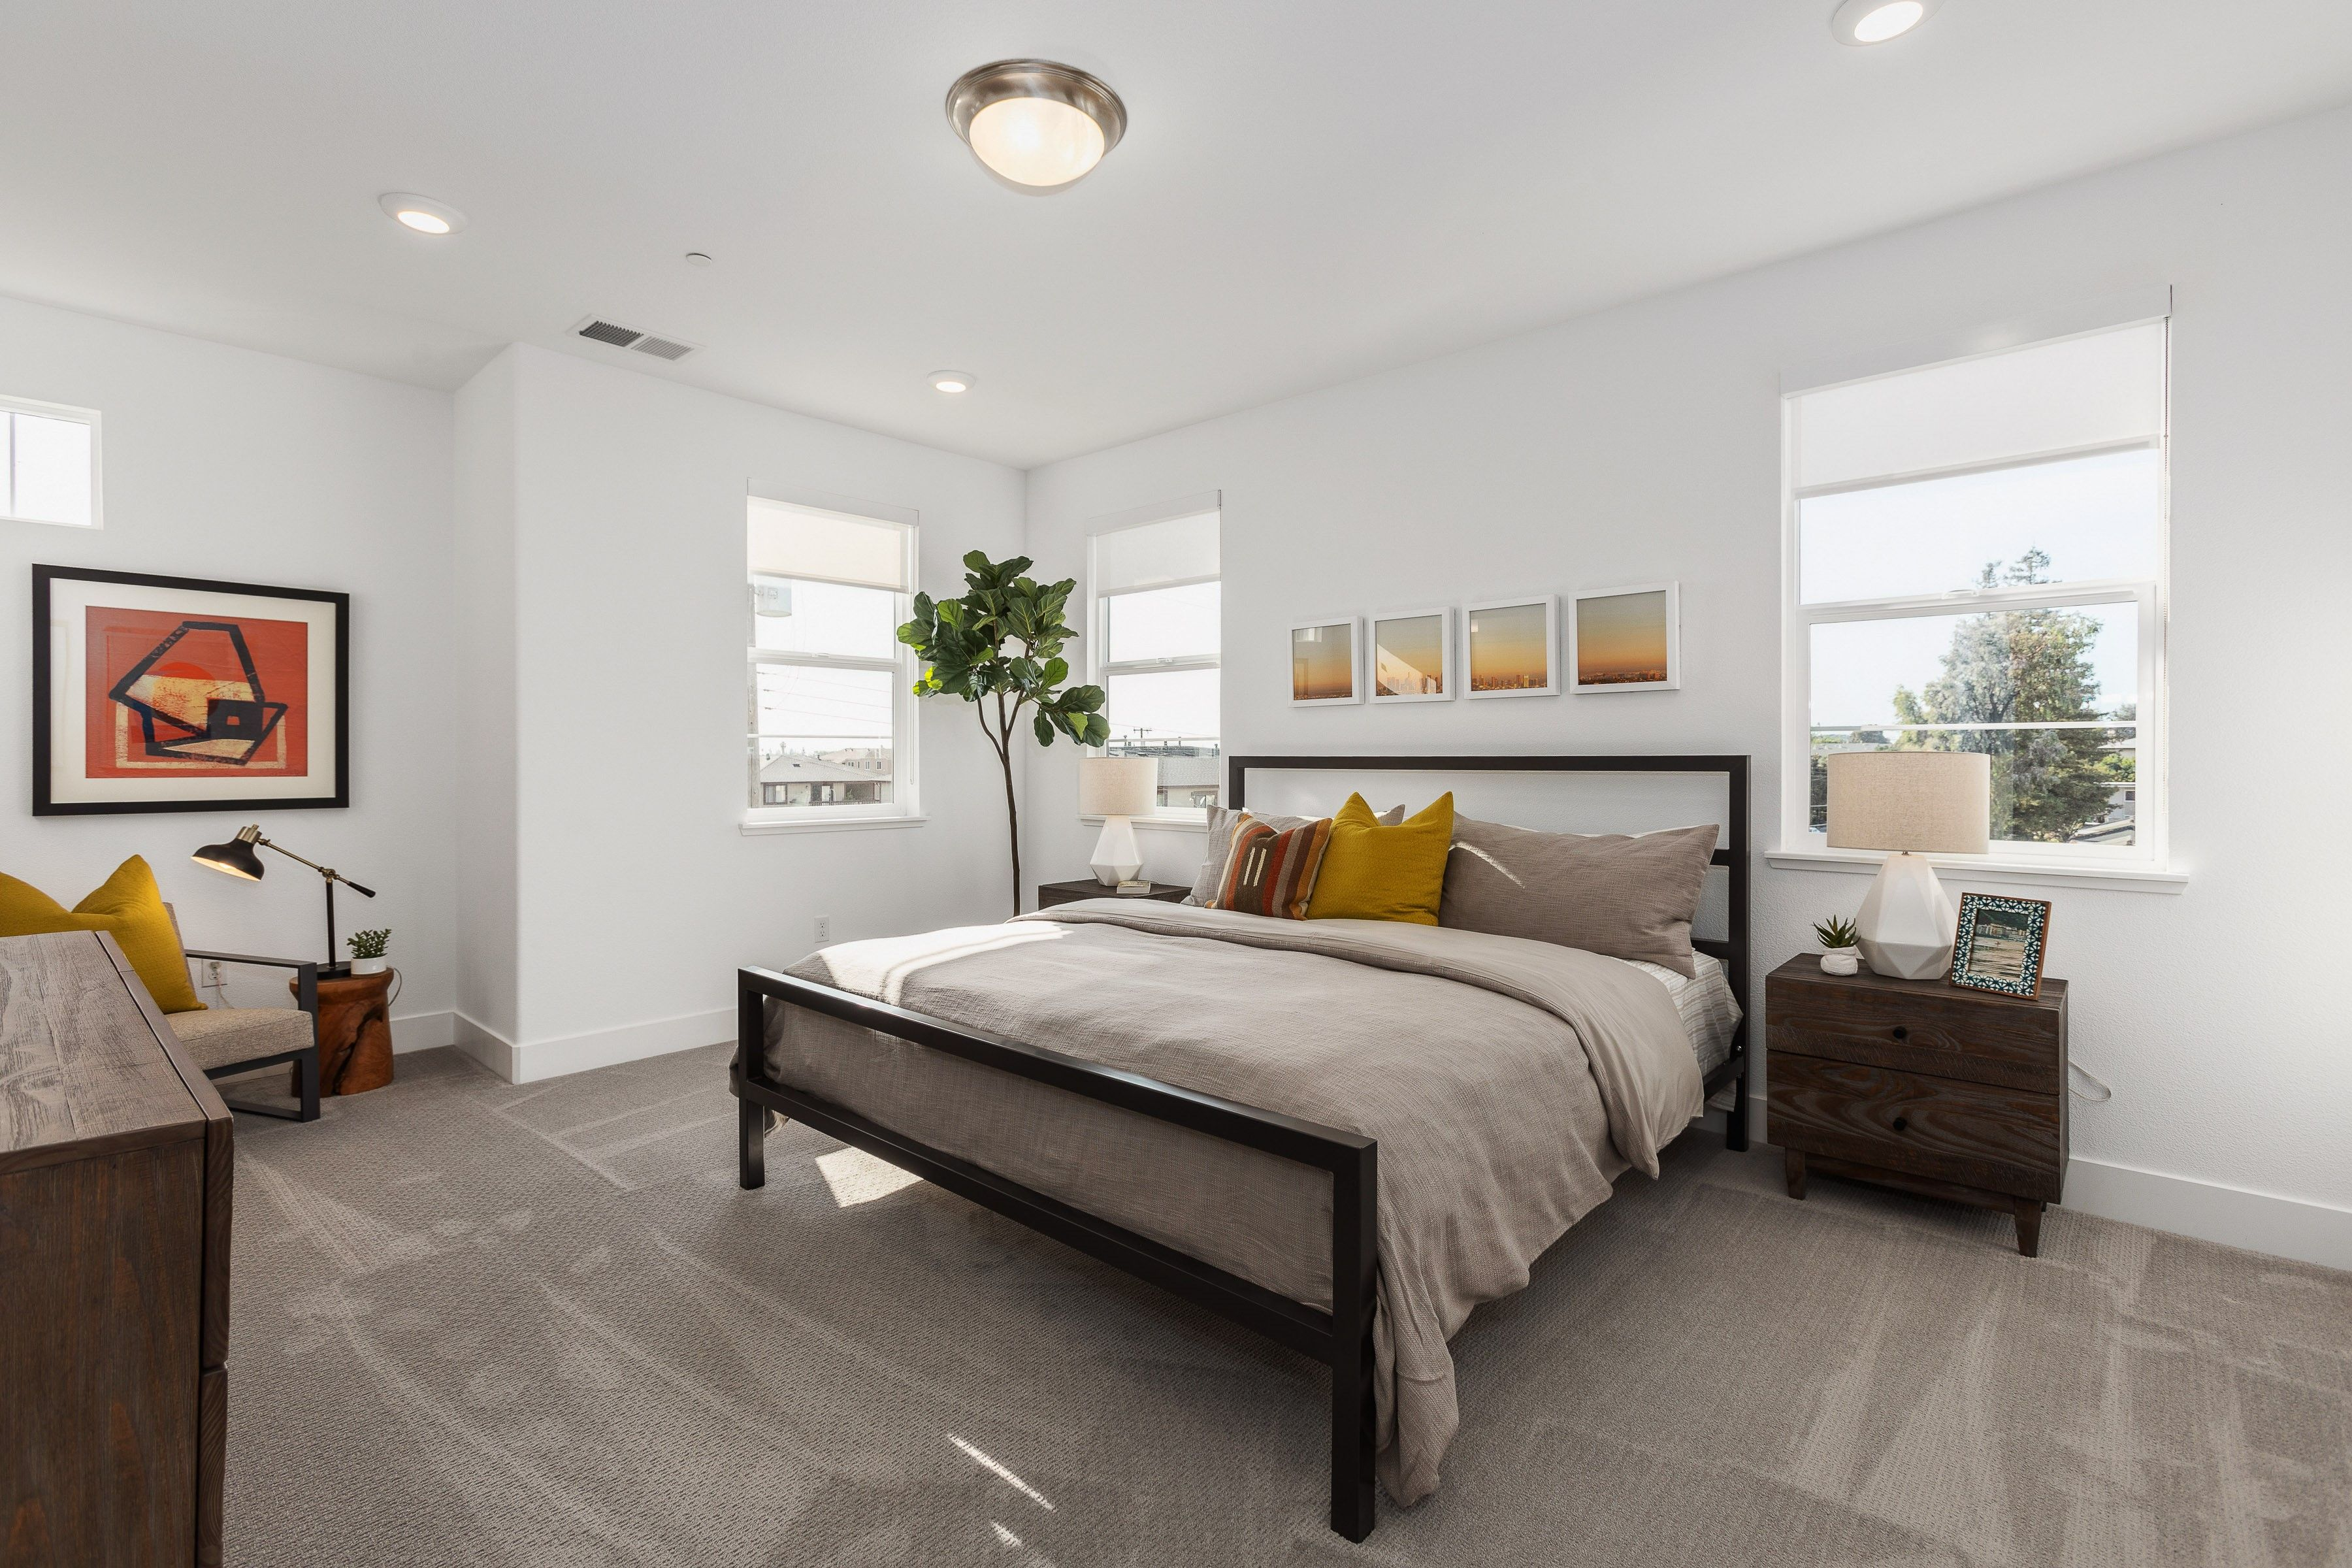 Bedroom featured in the Plan 3 WLH By Taylor Morrison in Oakland-Alameda, CA